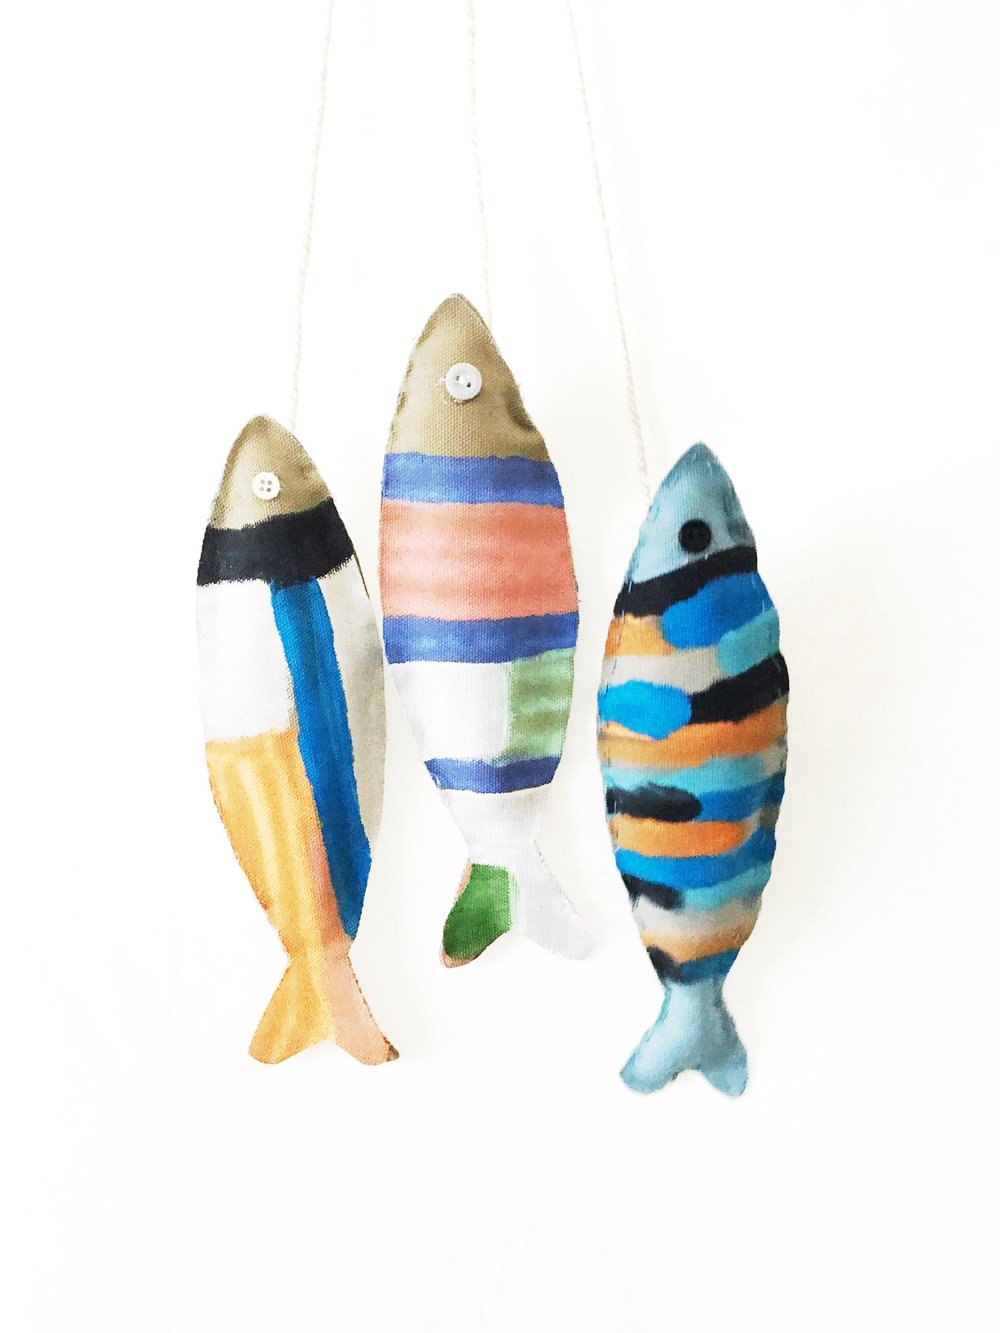 Ri's fish. She hand stitched the one on the far right and fabric glued the other two (her hands were tired).